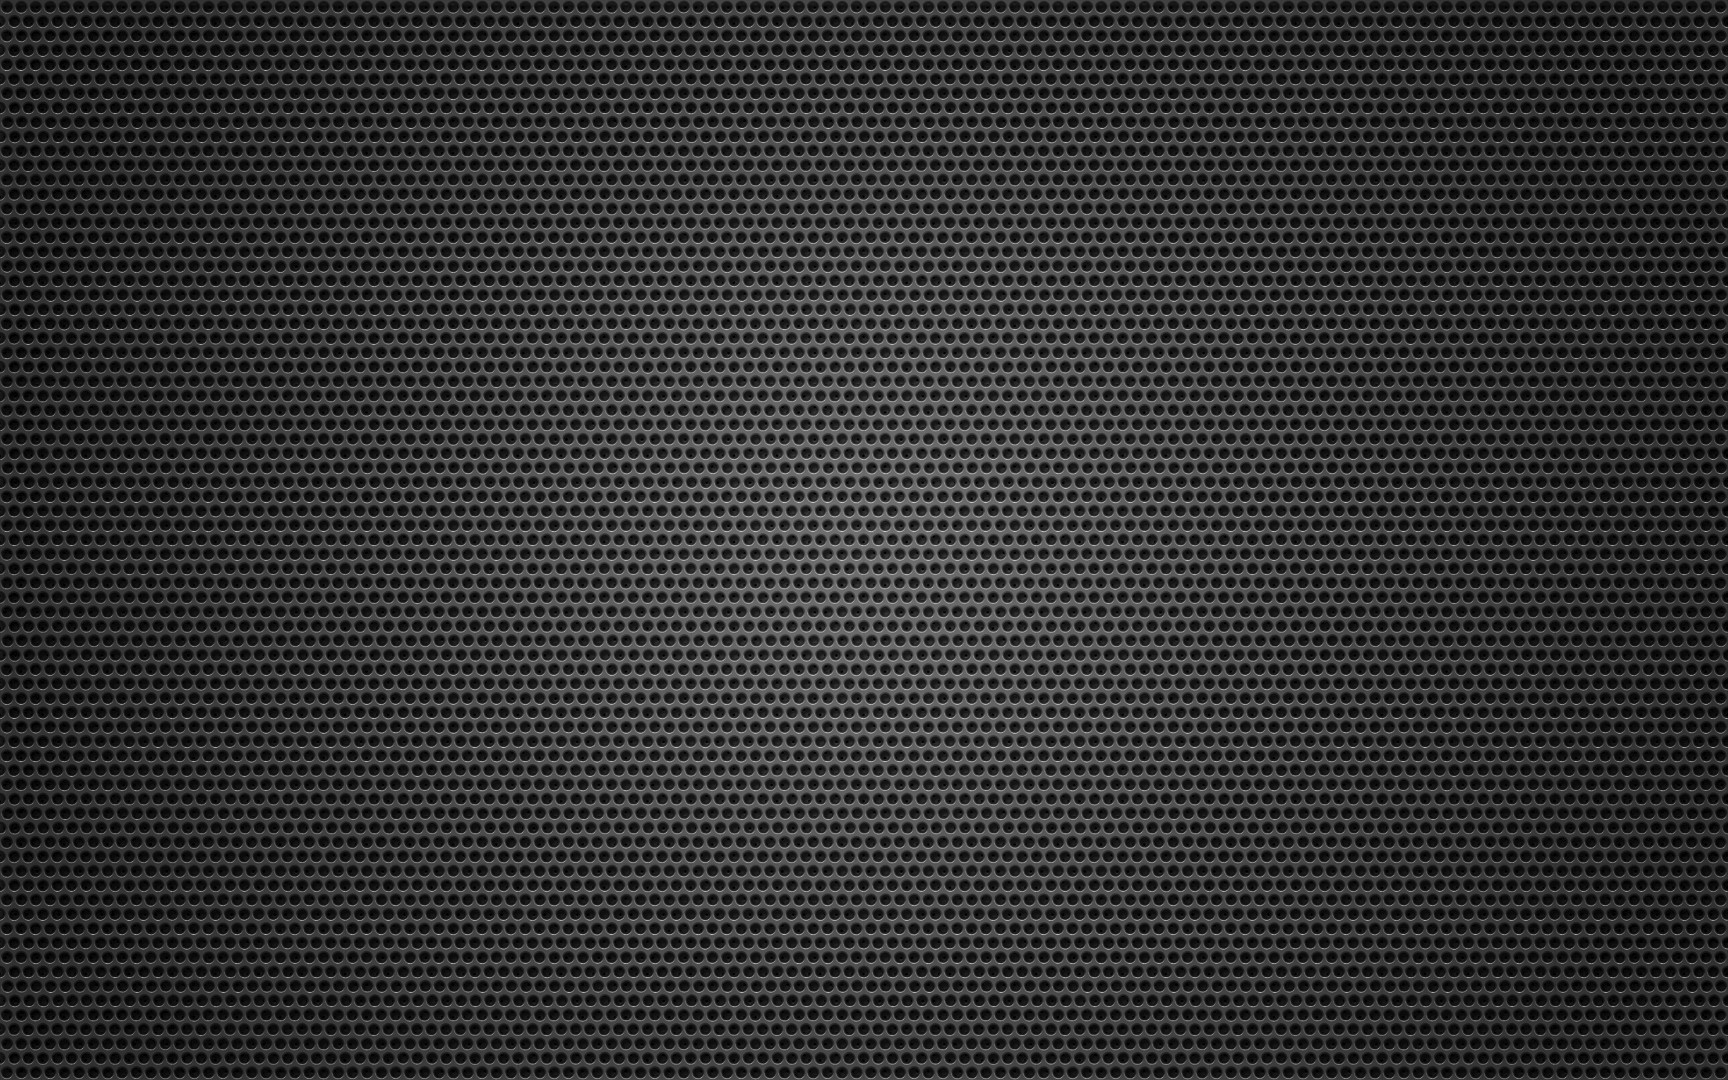 Black-Background-Metal-Hole-small-2560x1600-by-Freeman-Large